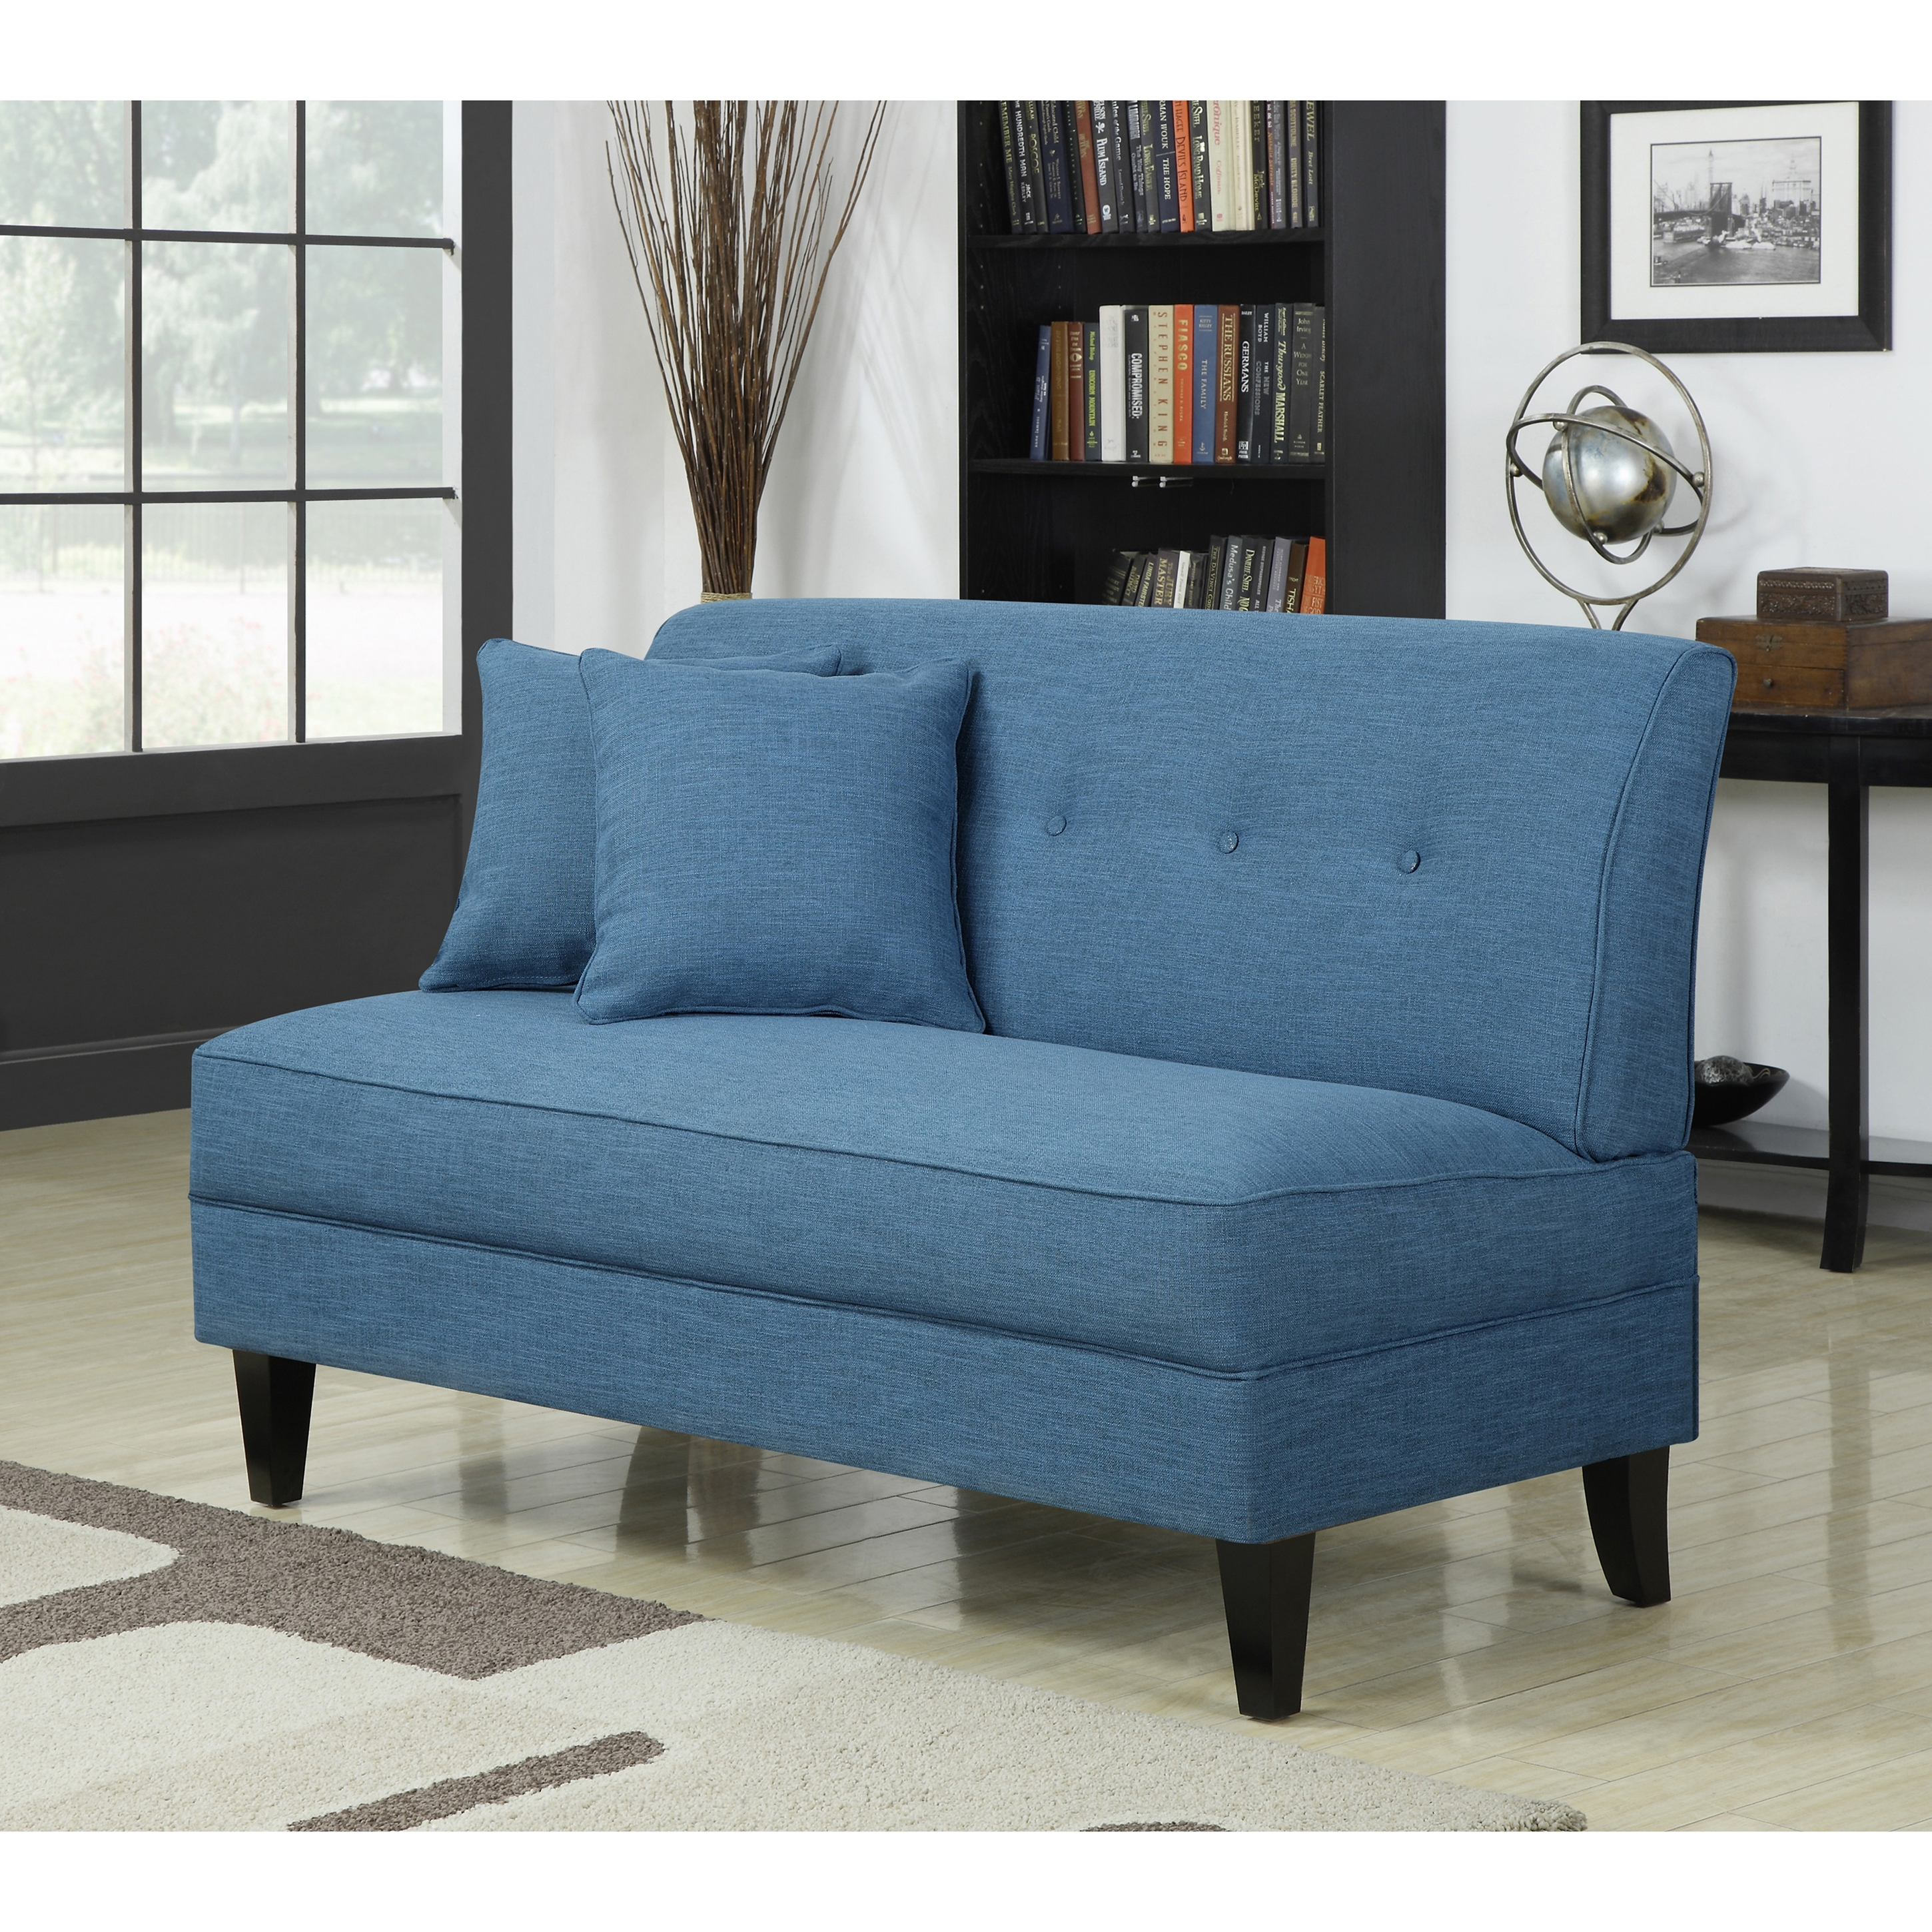 Furniture: Furniture Ideas: Armless Loveseat — Carolinacouture For Widely Used Small Armless Sofas (View 3 of 20)